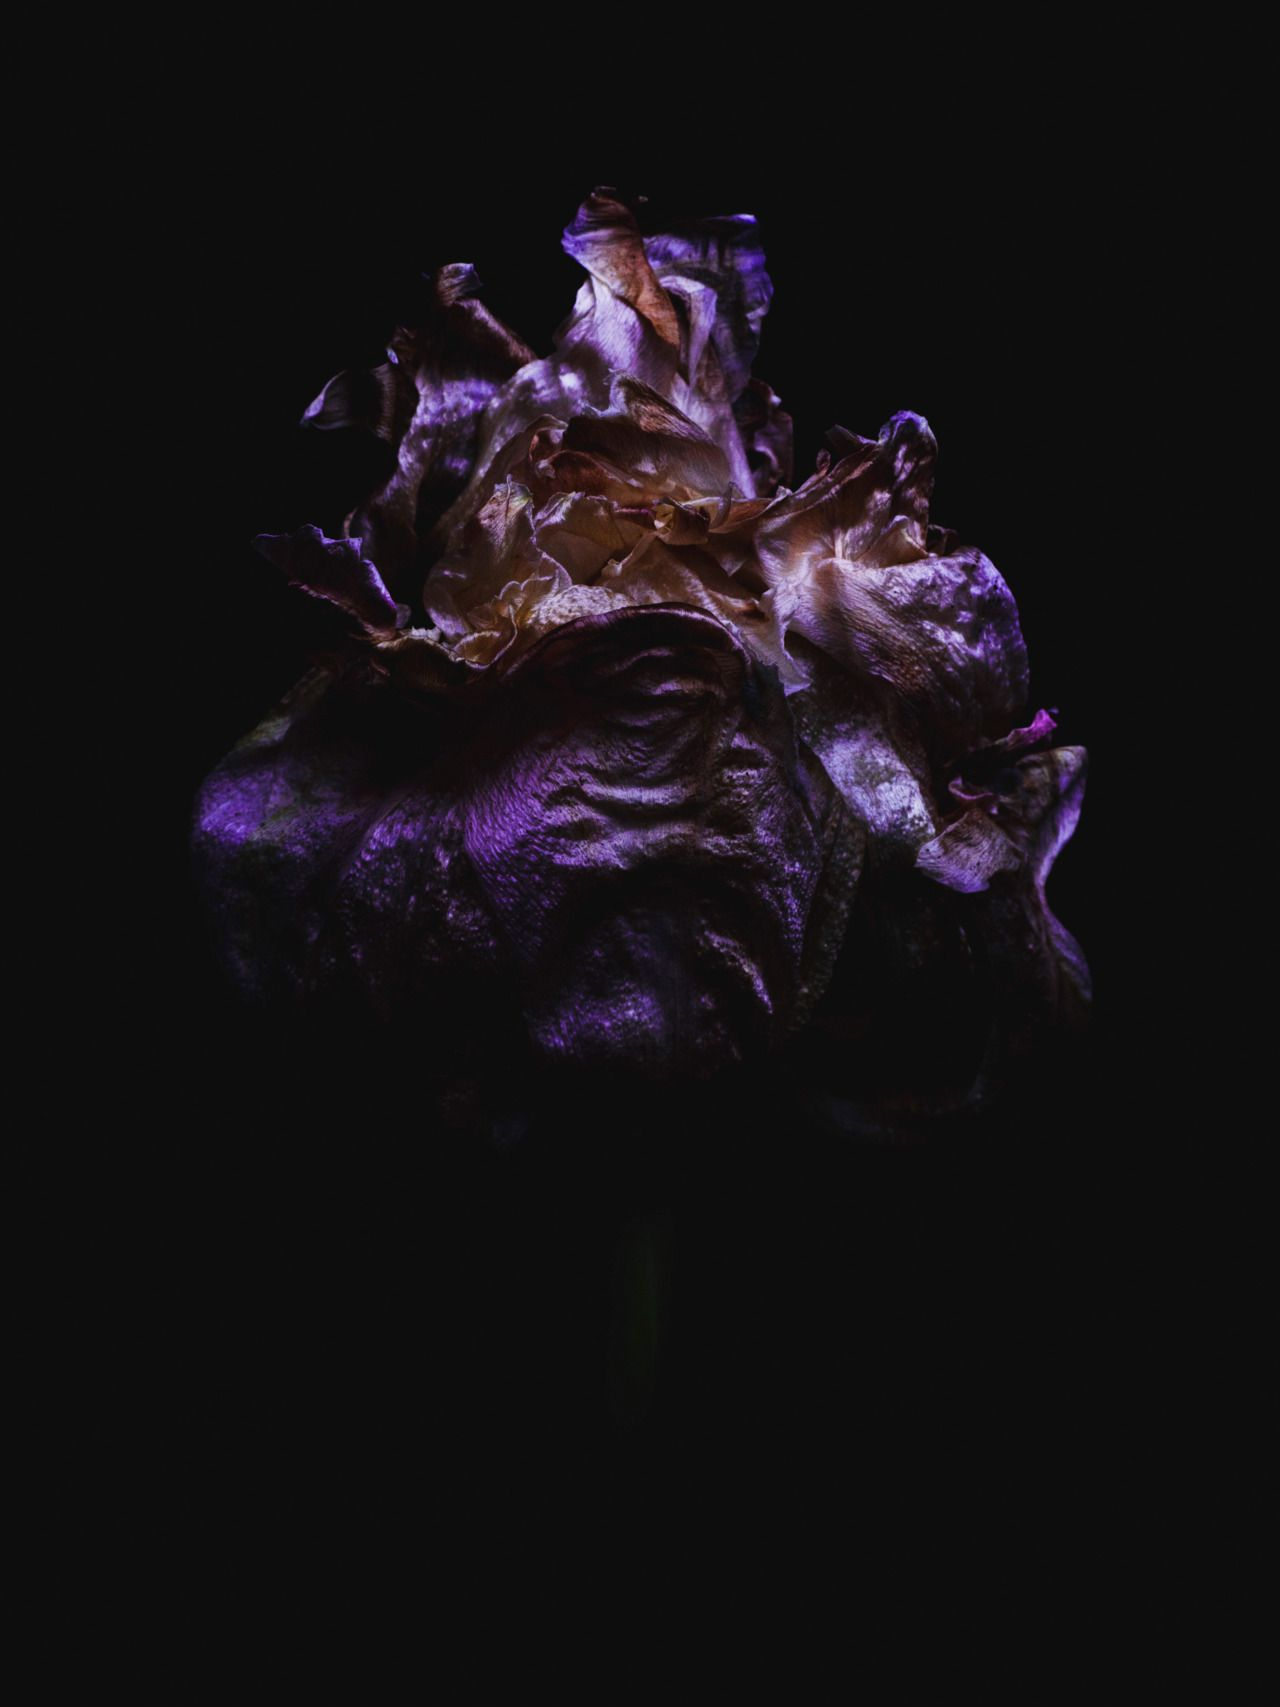 Decaying tulip shot by Billy Kidd